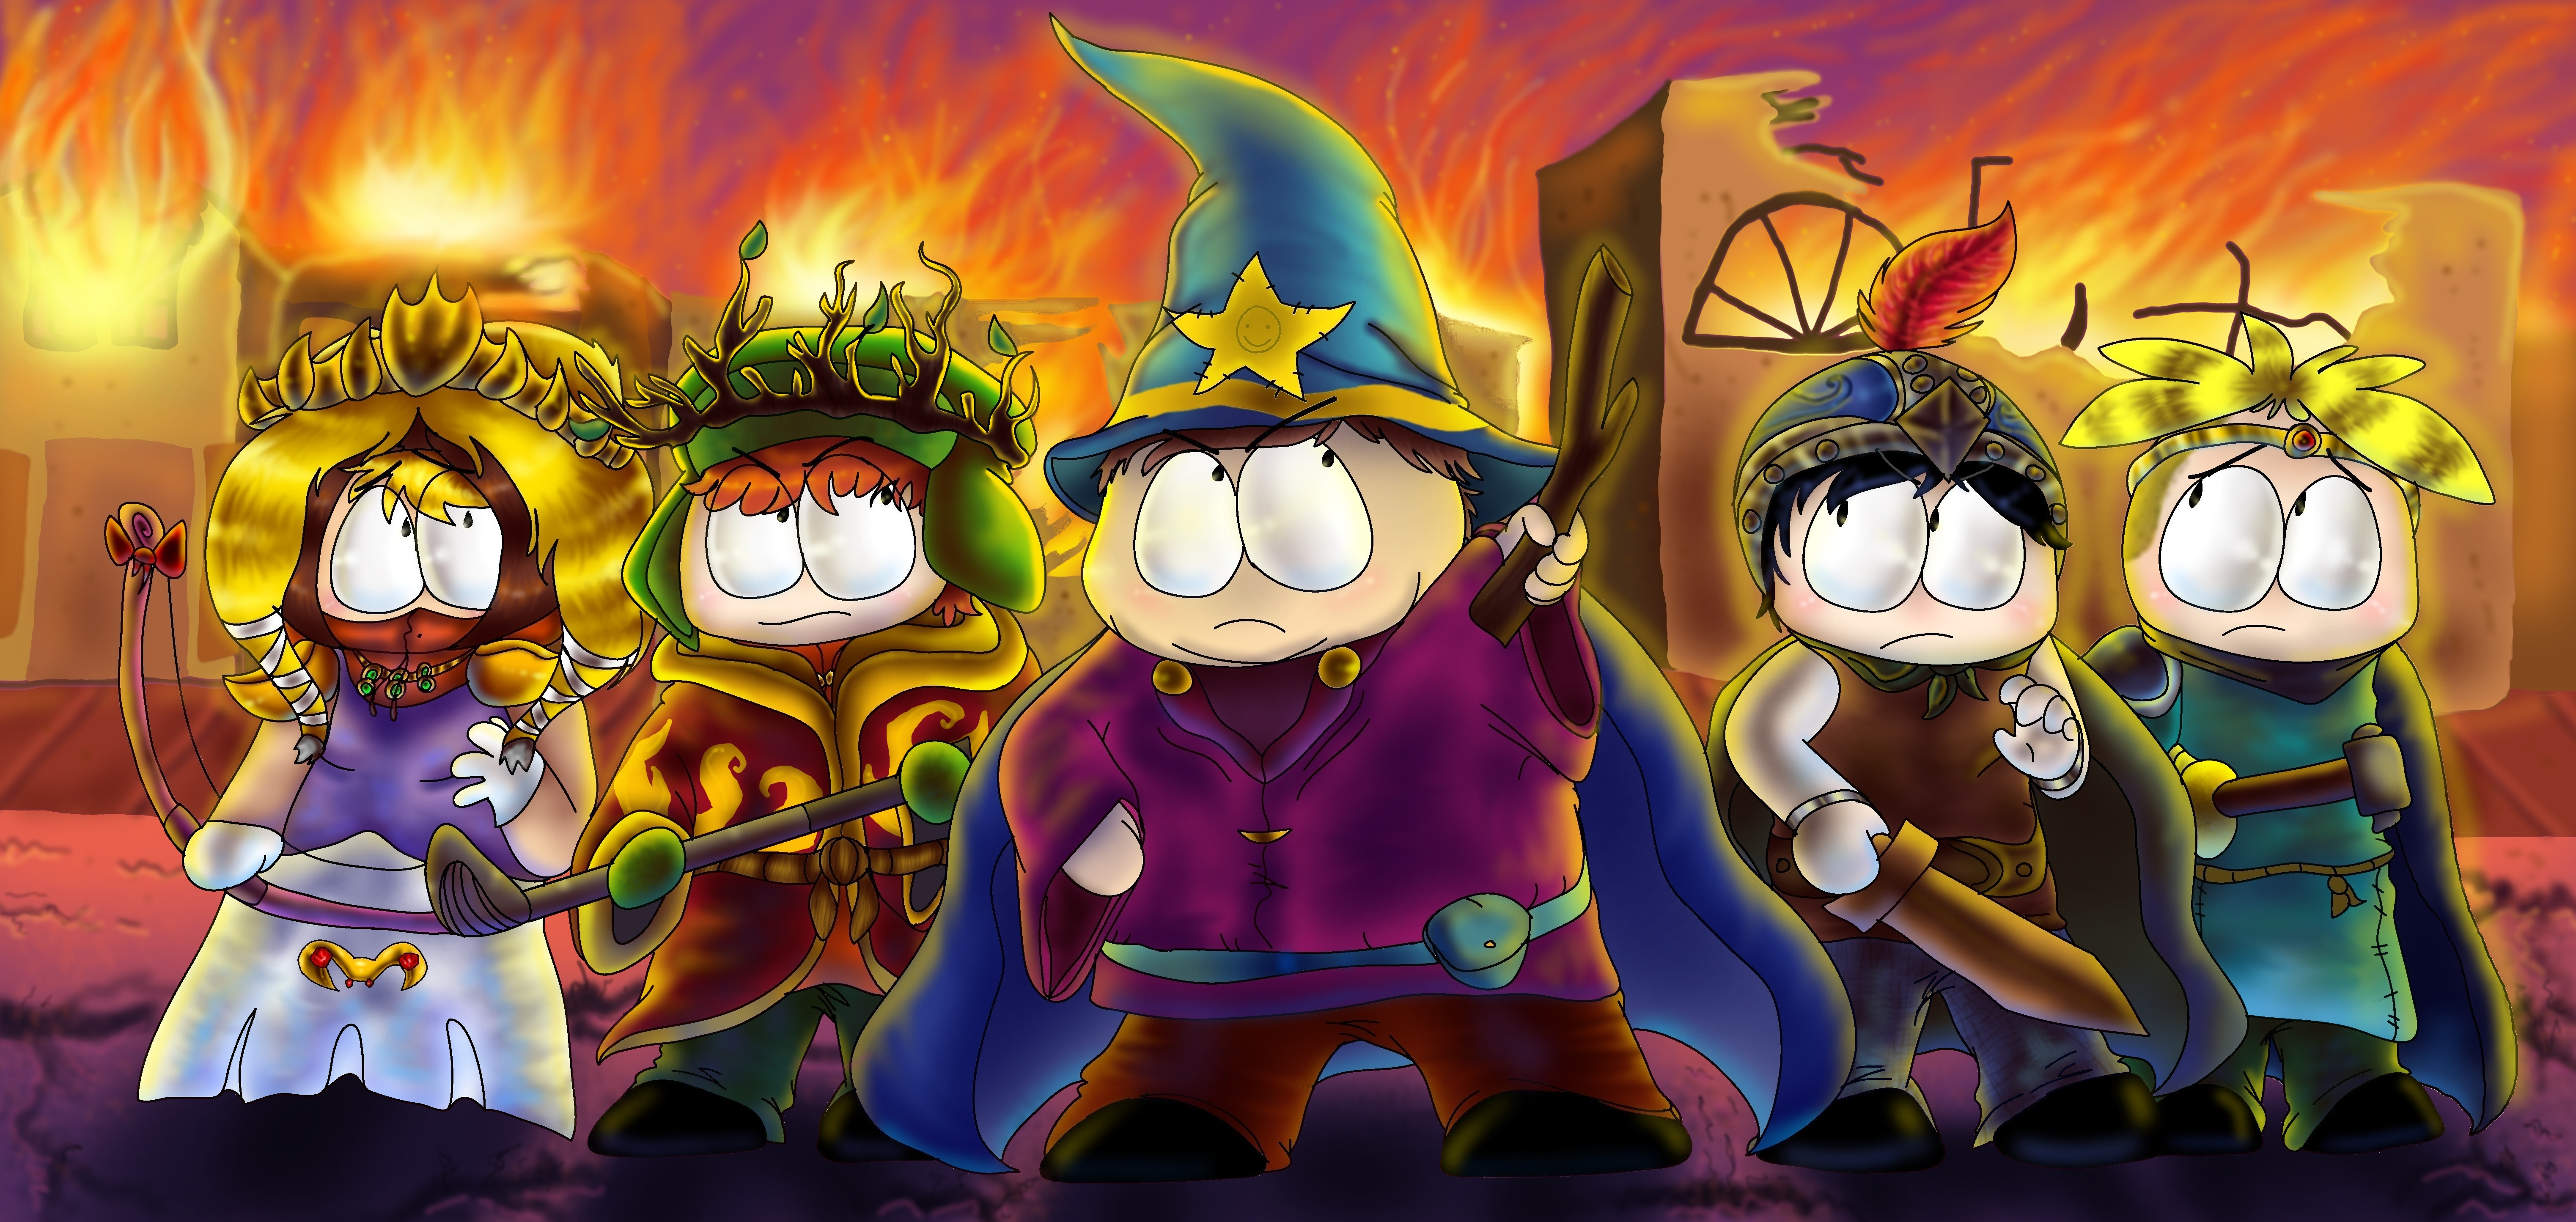 South Park The Sick Of Truth By Plaguedogs123 On Deviantart